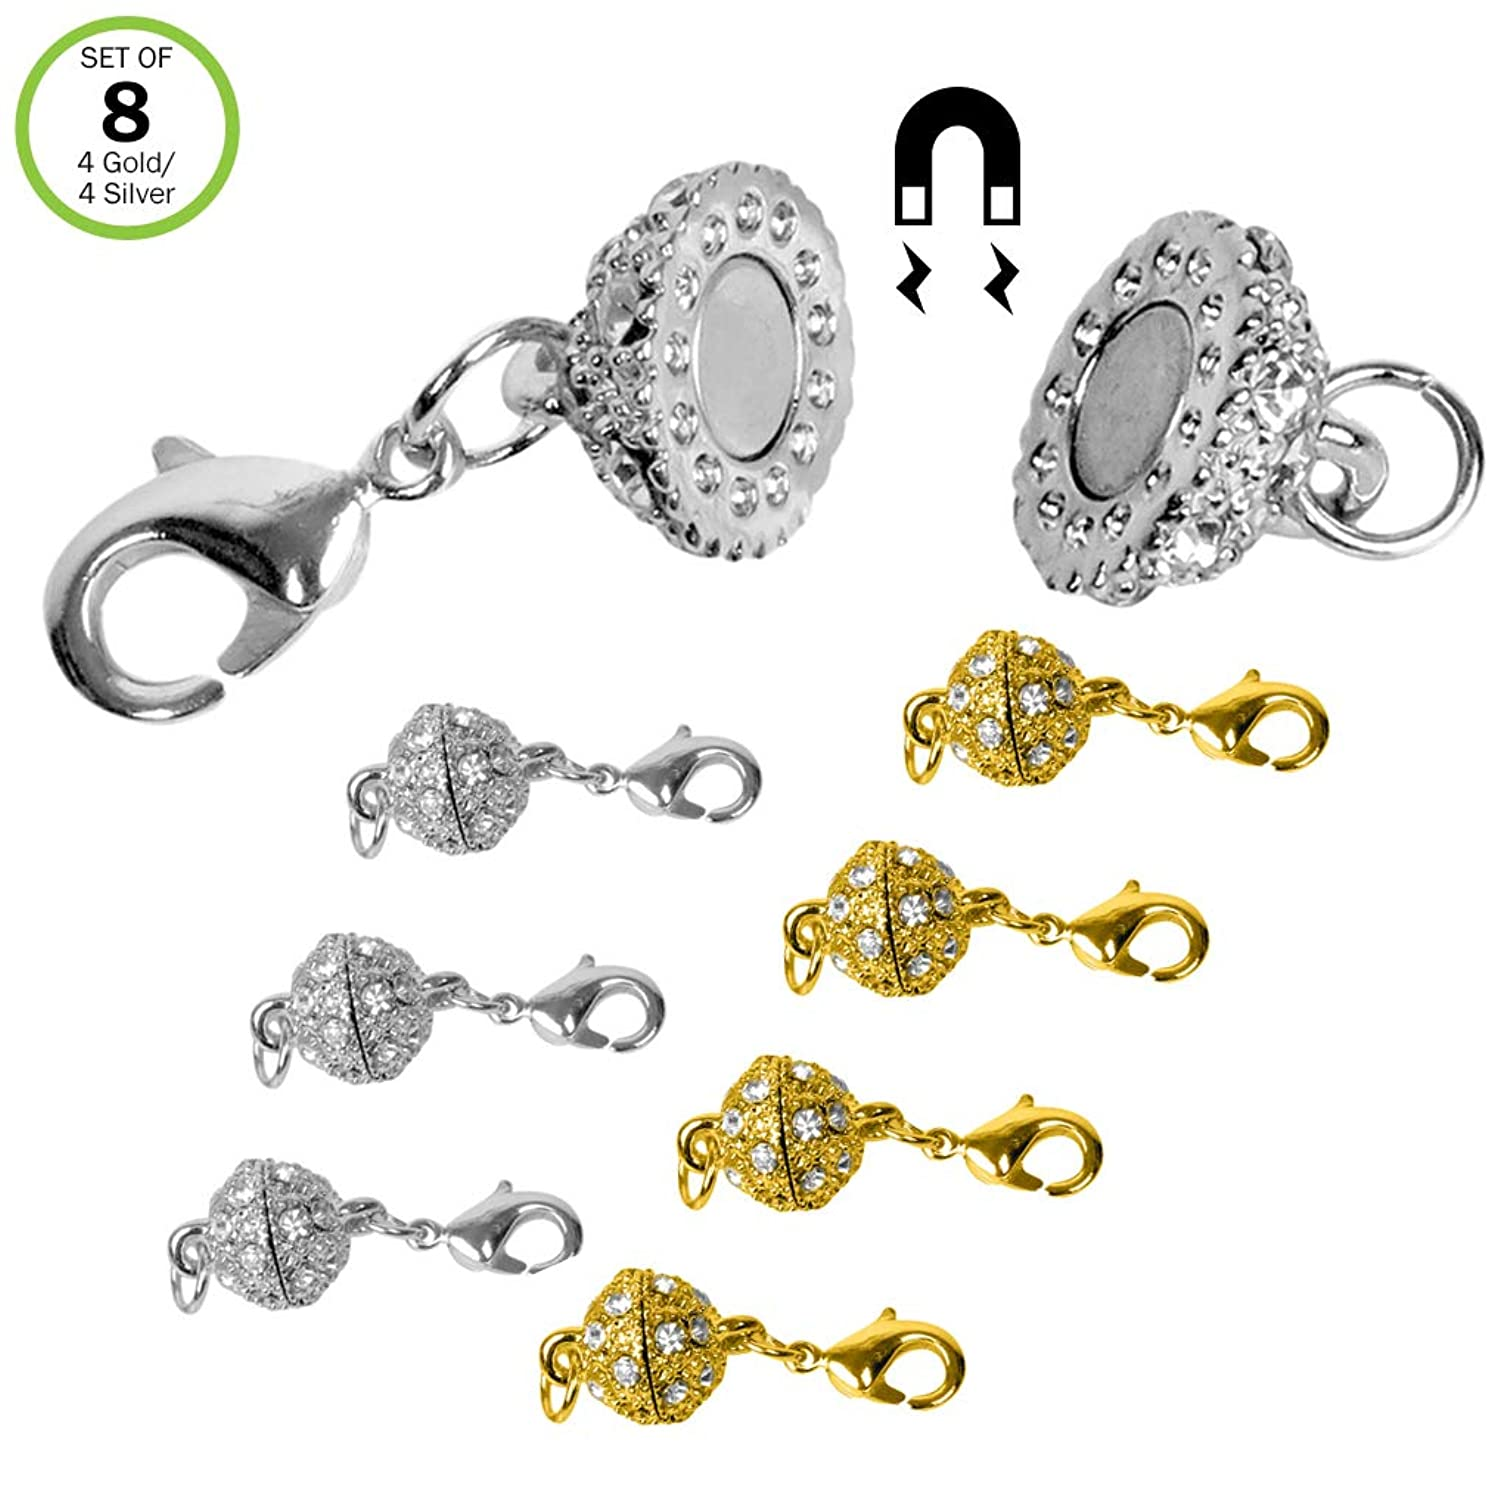 Evelots Magnetic Jewelry Clasps, Rhinestone Ball, Goldtone Or Silvertone- Set/8